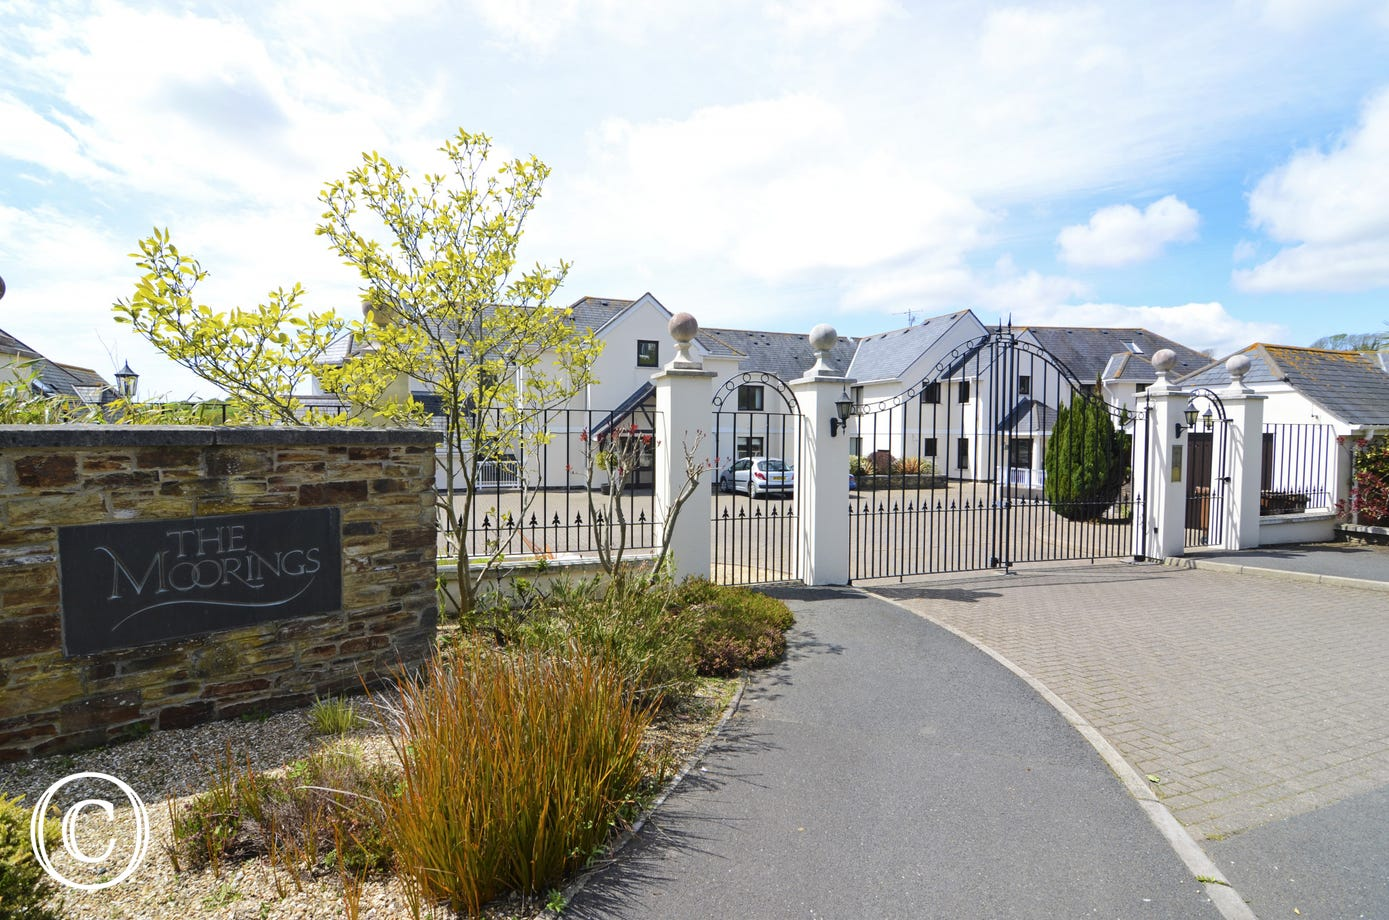 stylish luxury apartment complex in Kingsbridge